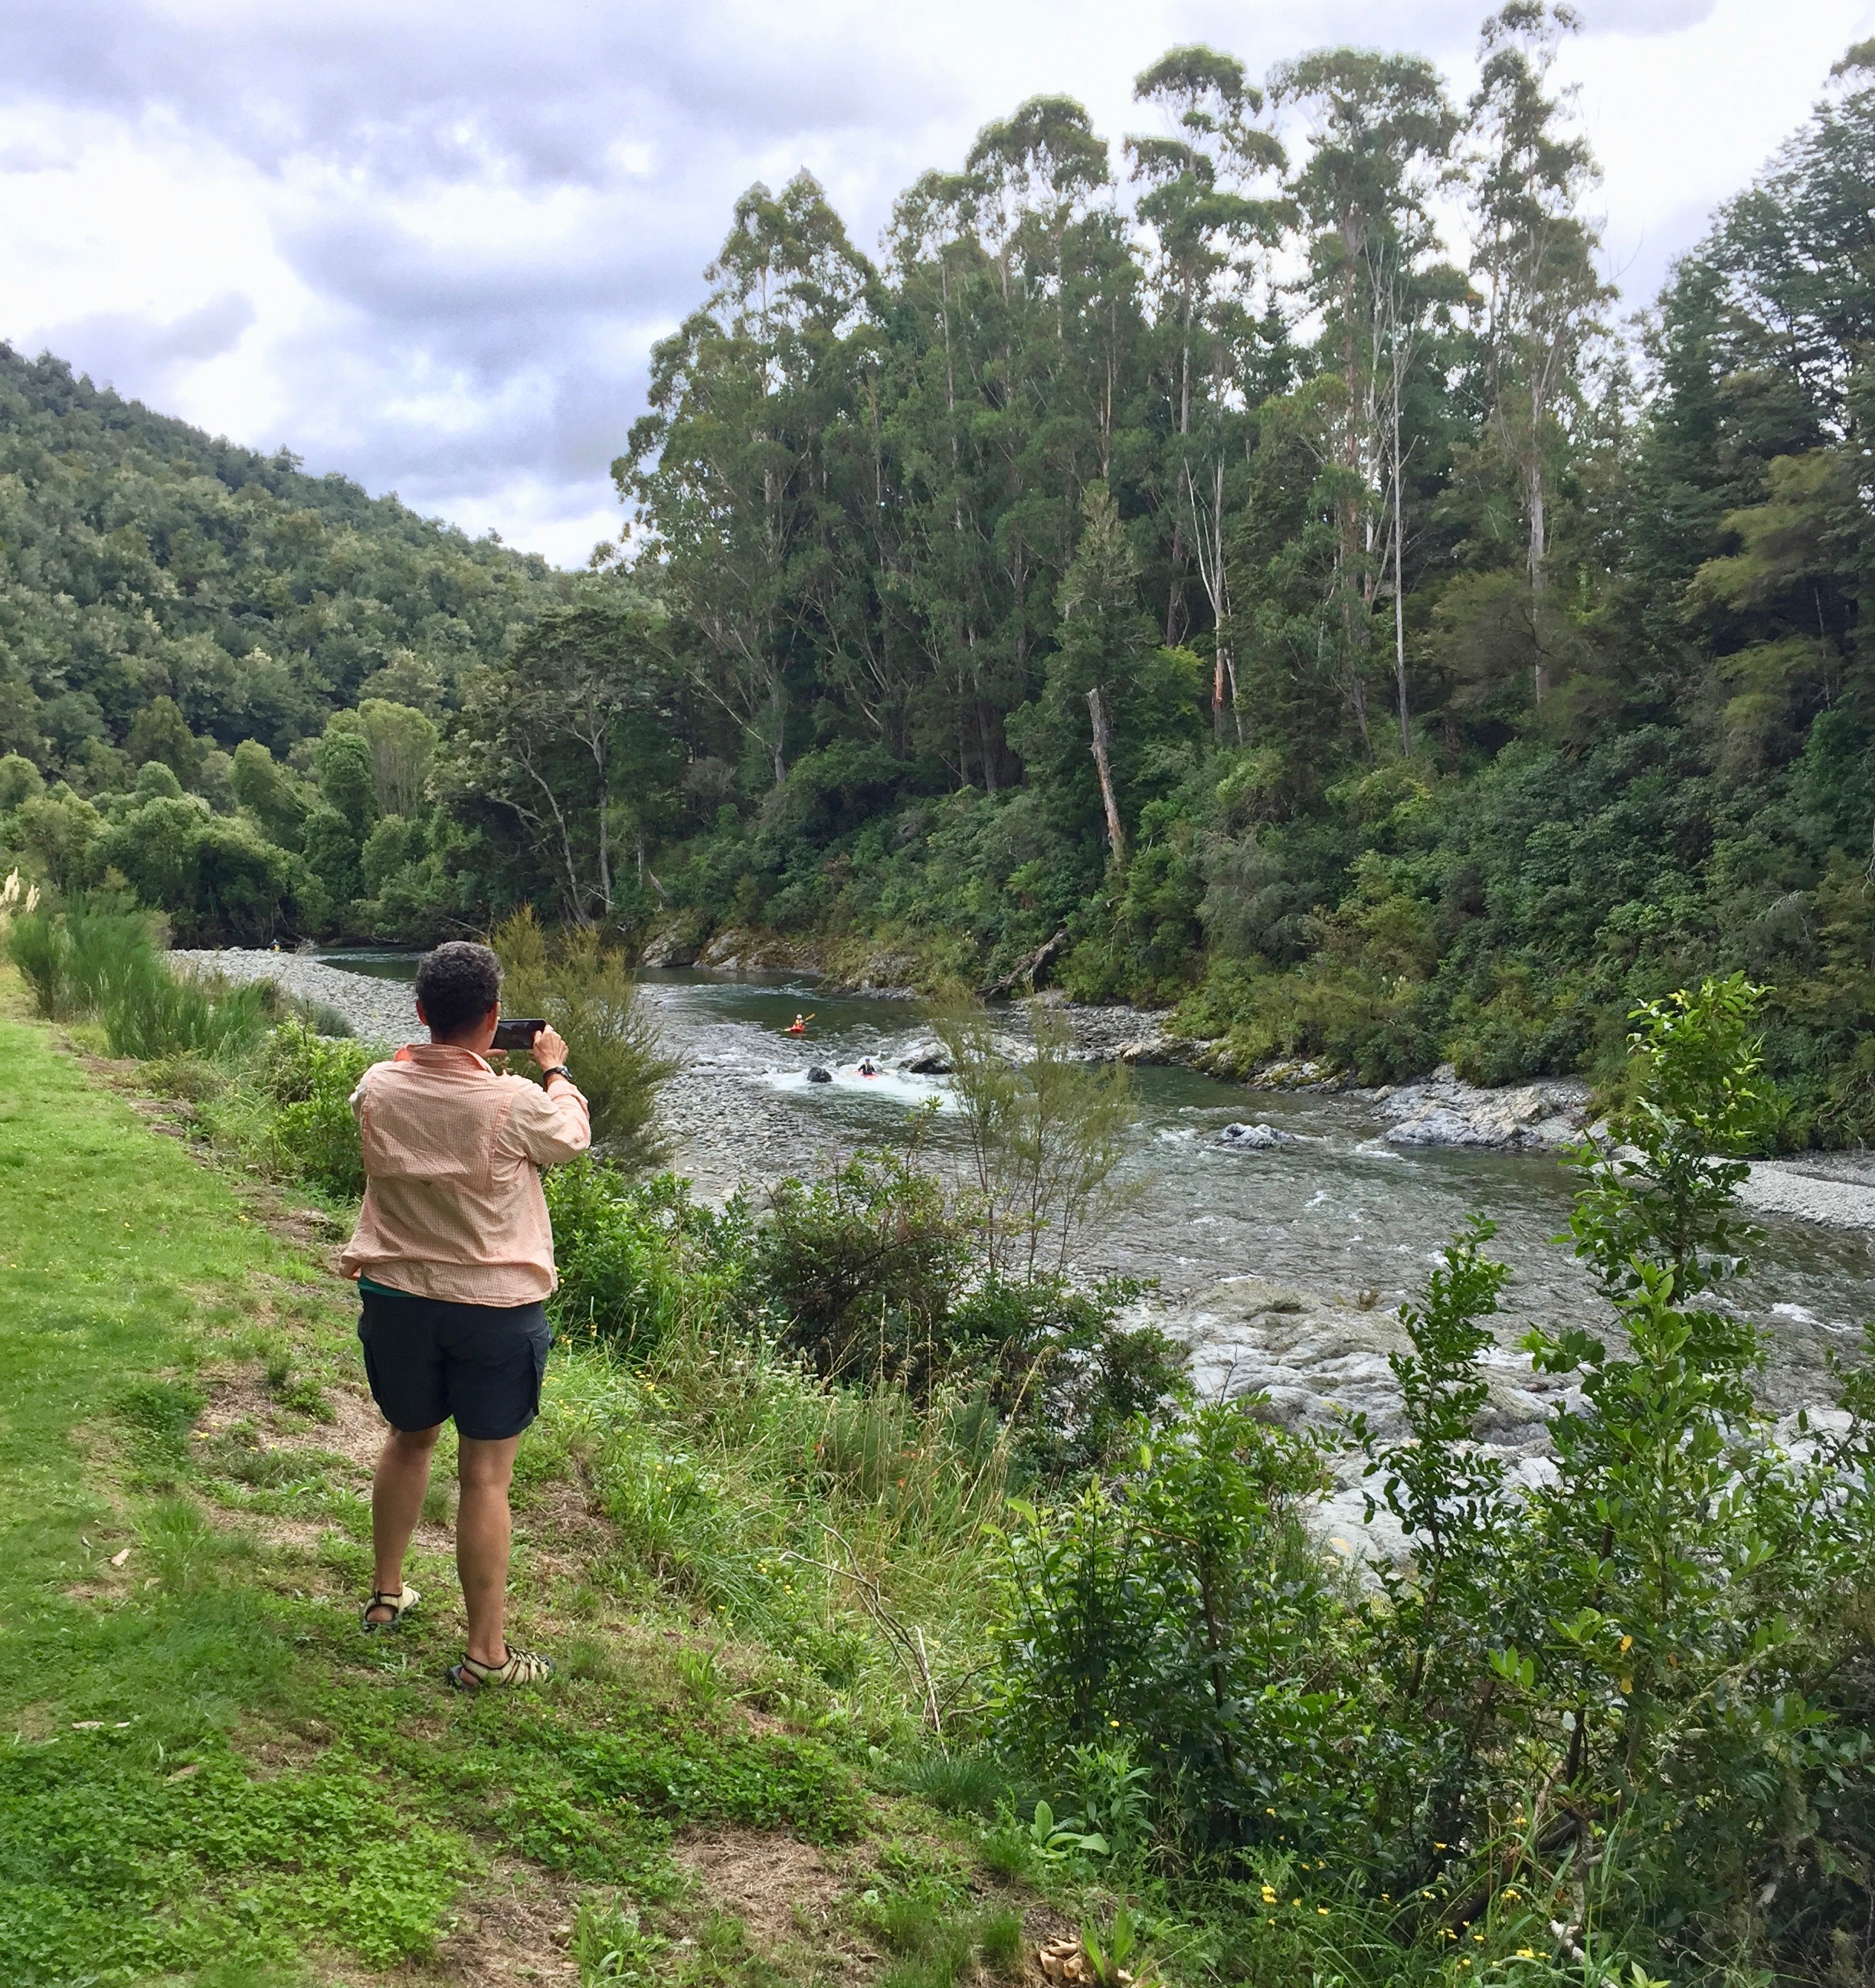 Camille taking a picture of some kayakers  on the Pelorus River